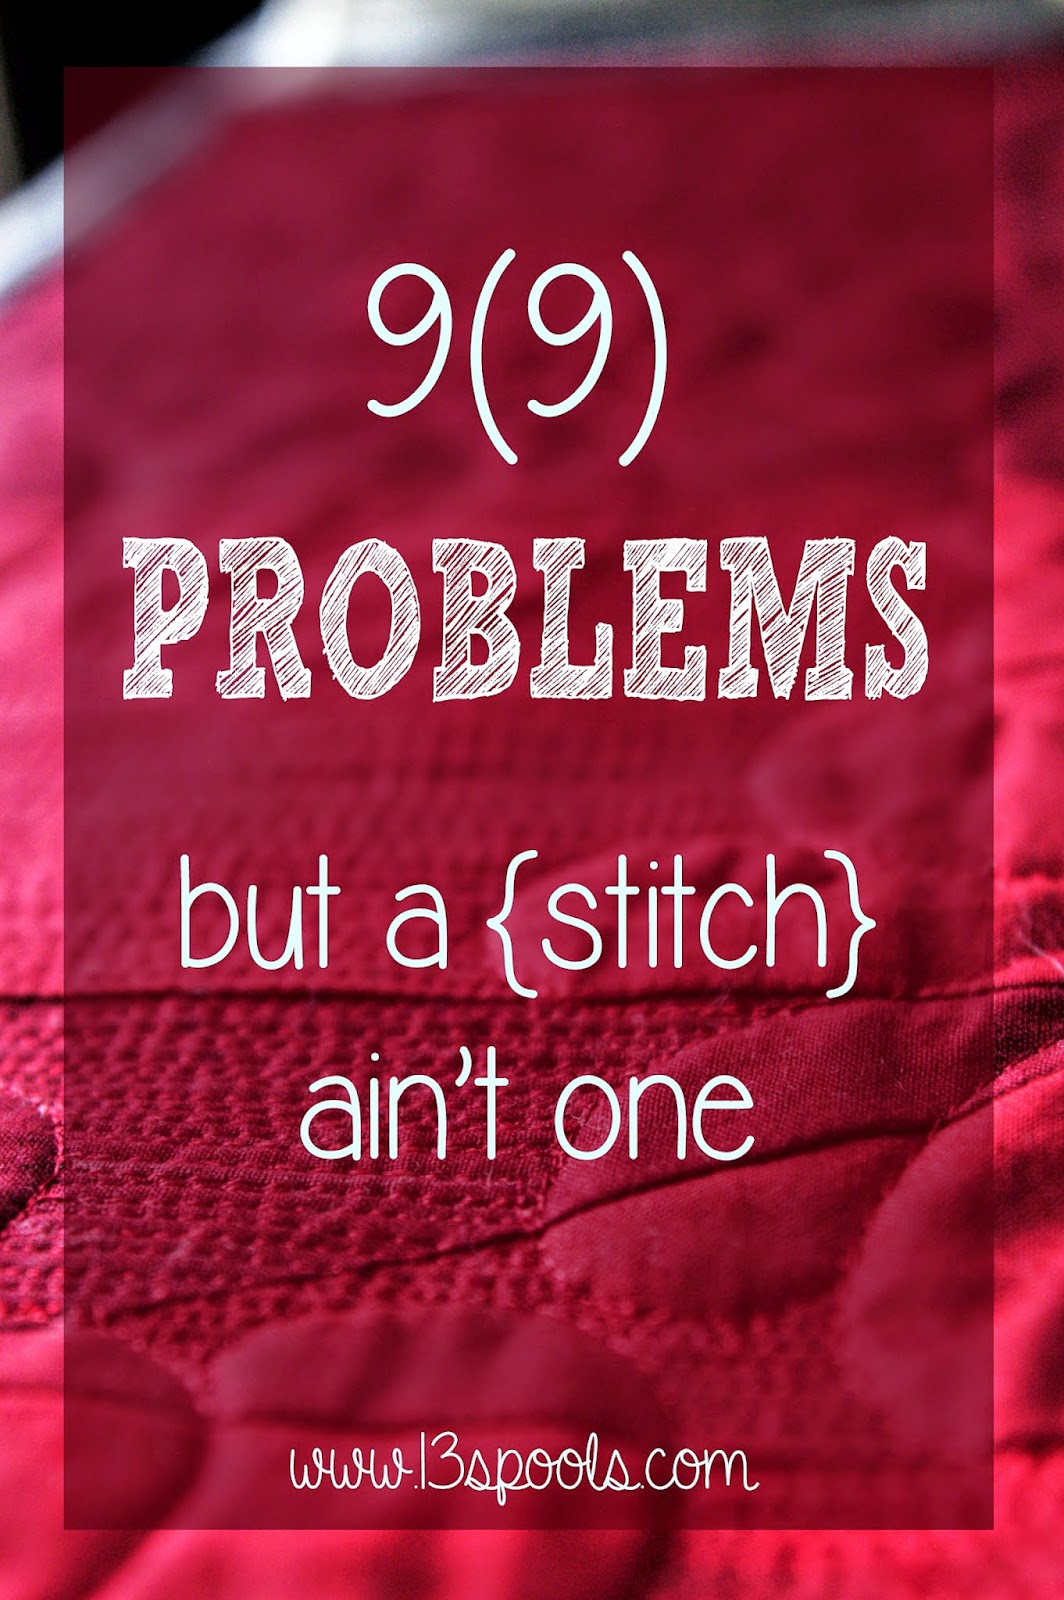 9(9) Problems... but a Stitch ain't one